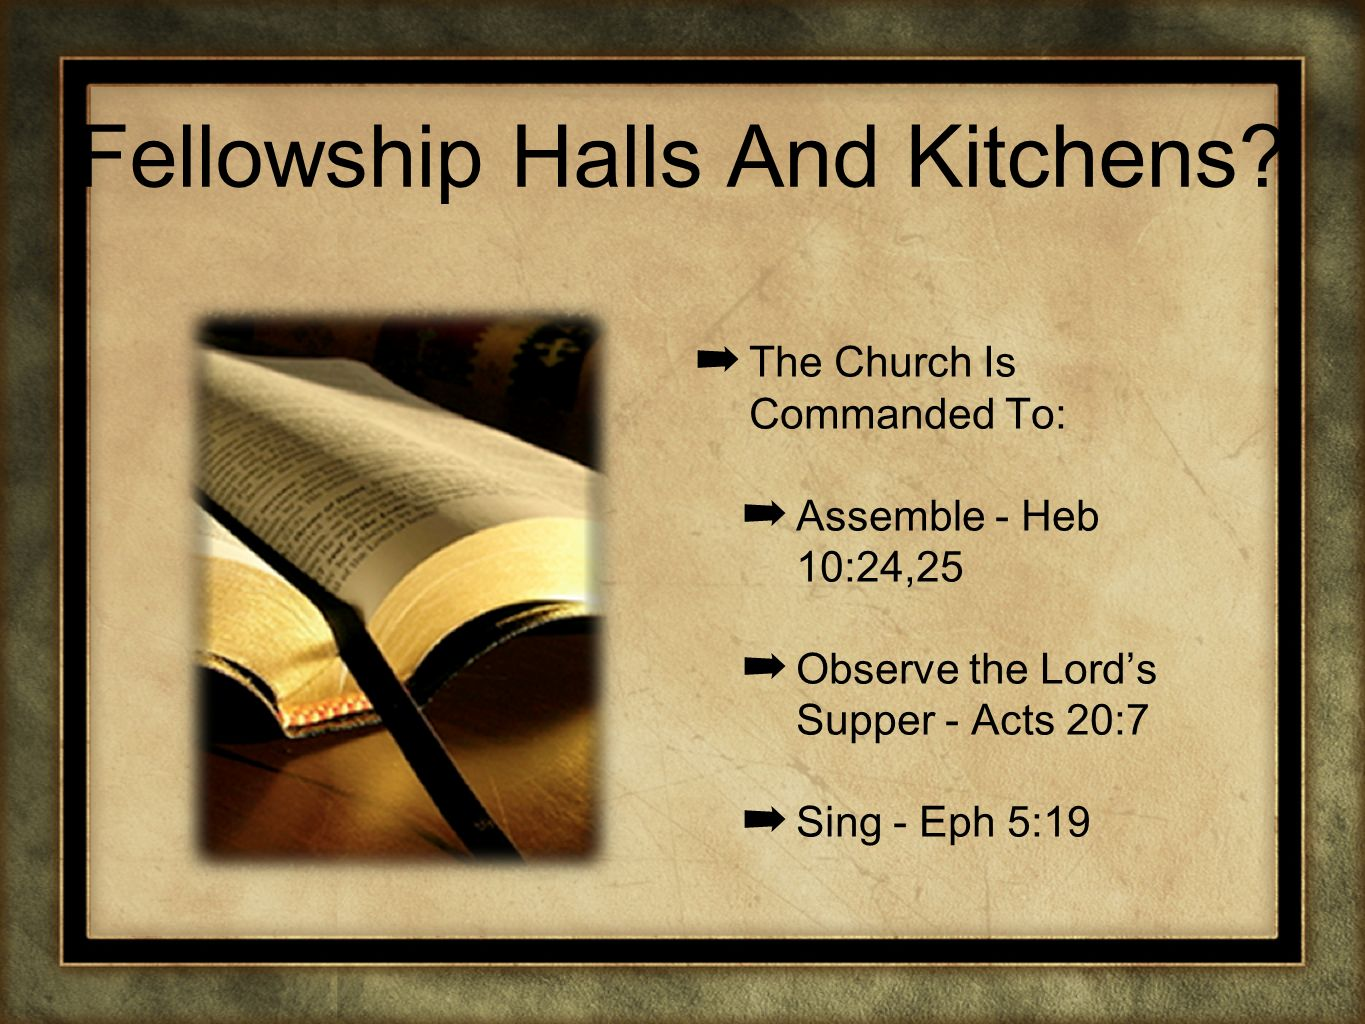 Fellowship Halls And Kitchens? The Church Is Commanded To: Assemble - Heb 10:24,25 Observe the Lords Supper - Acts 20:7 Sing - Eph 5:19